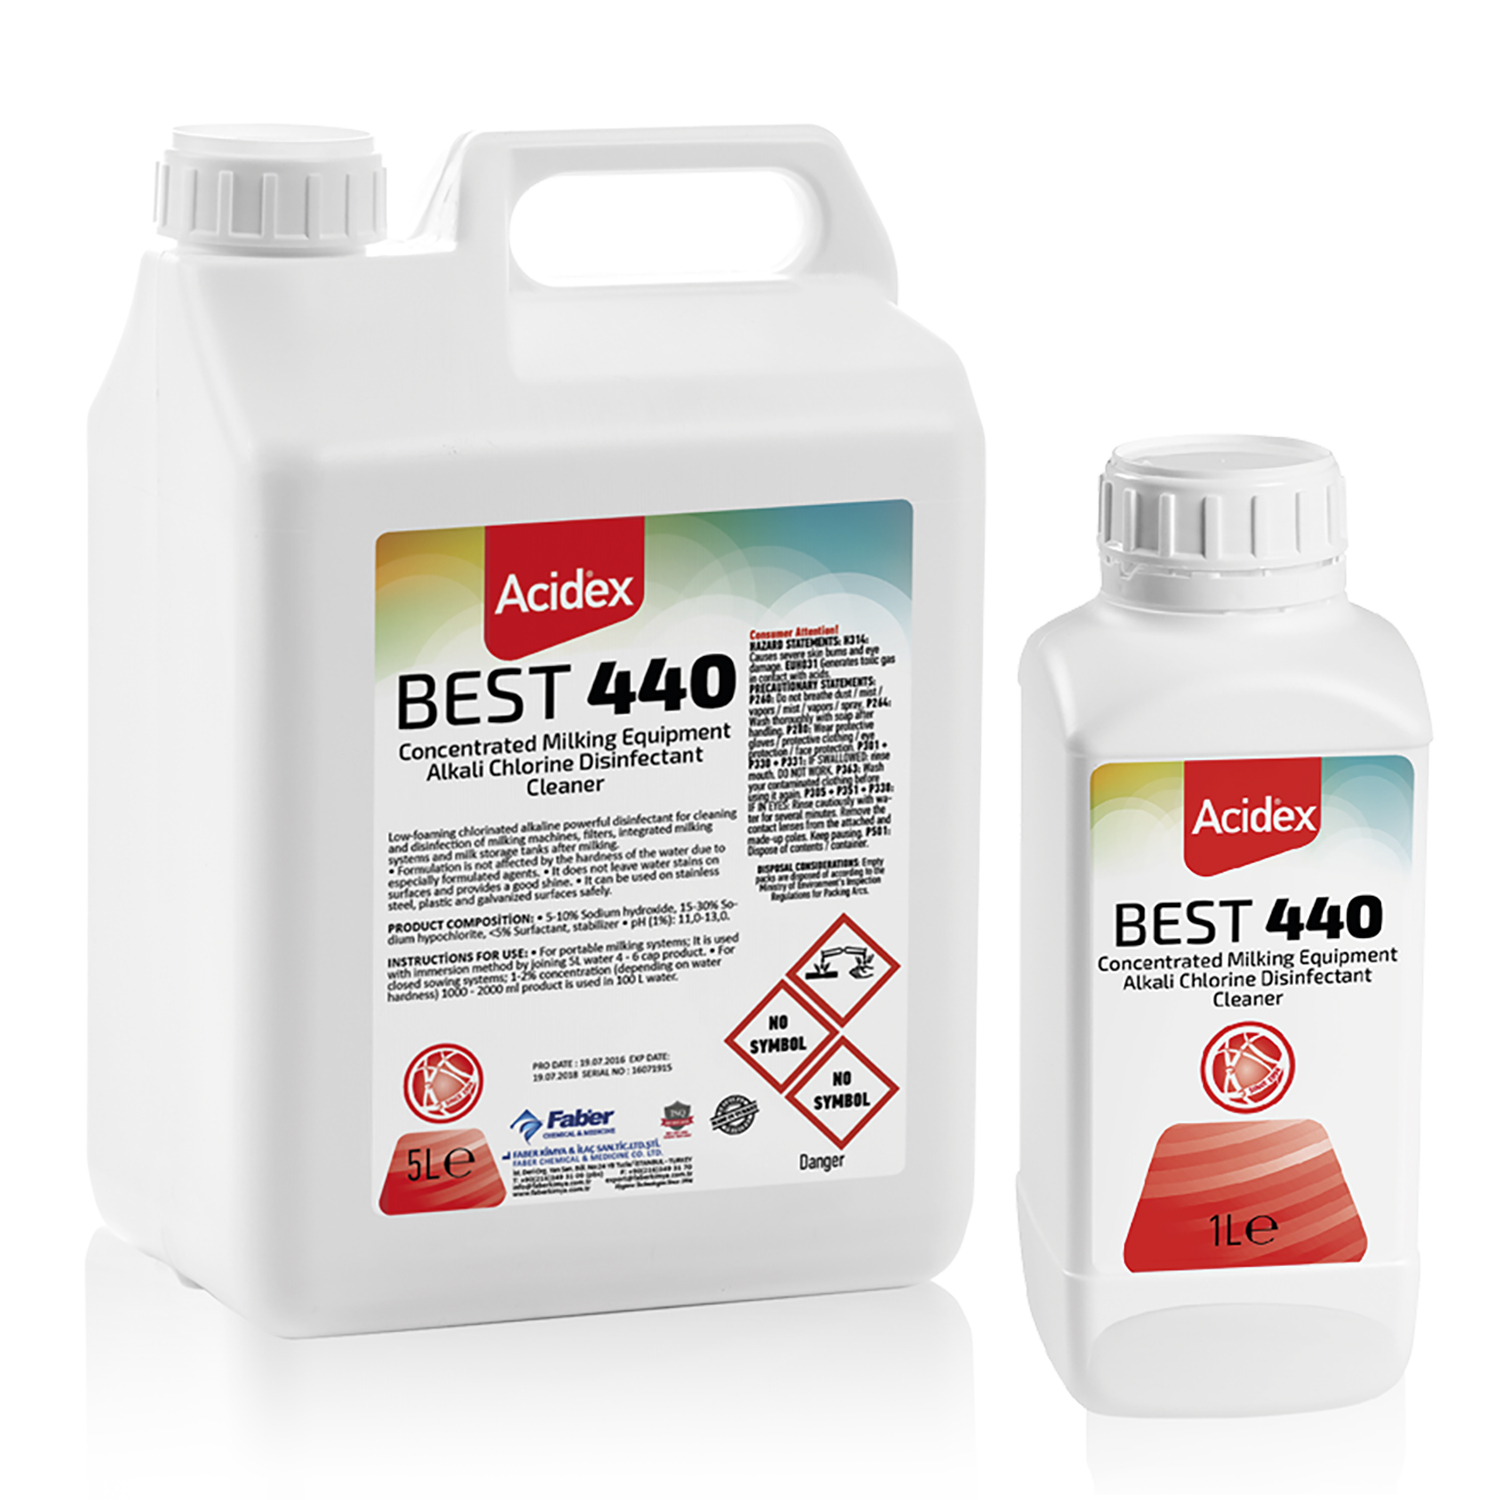 Acidex BEST 440